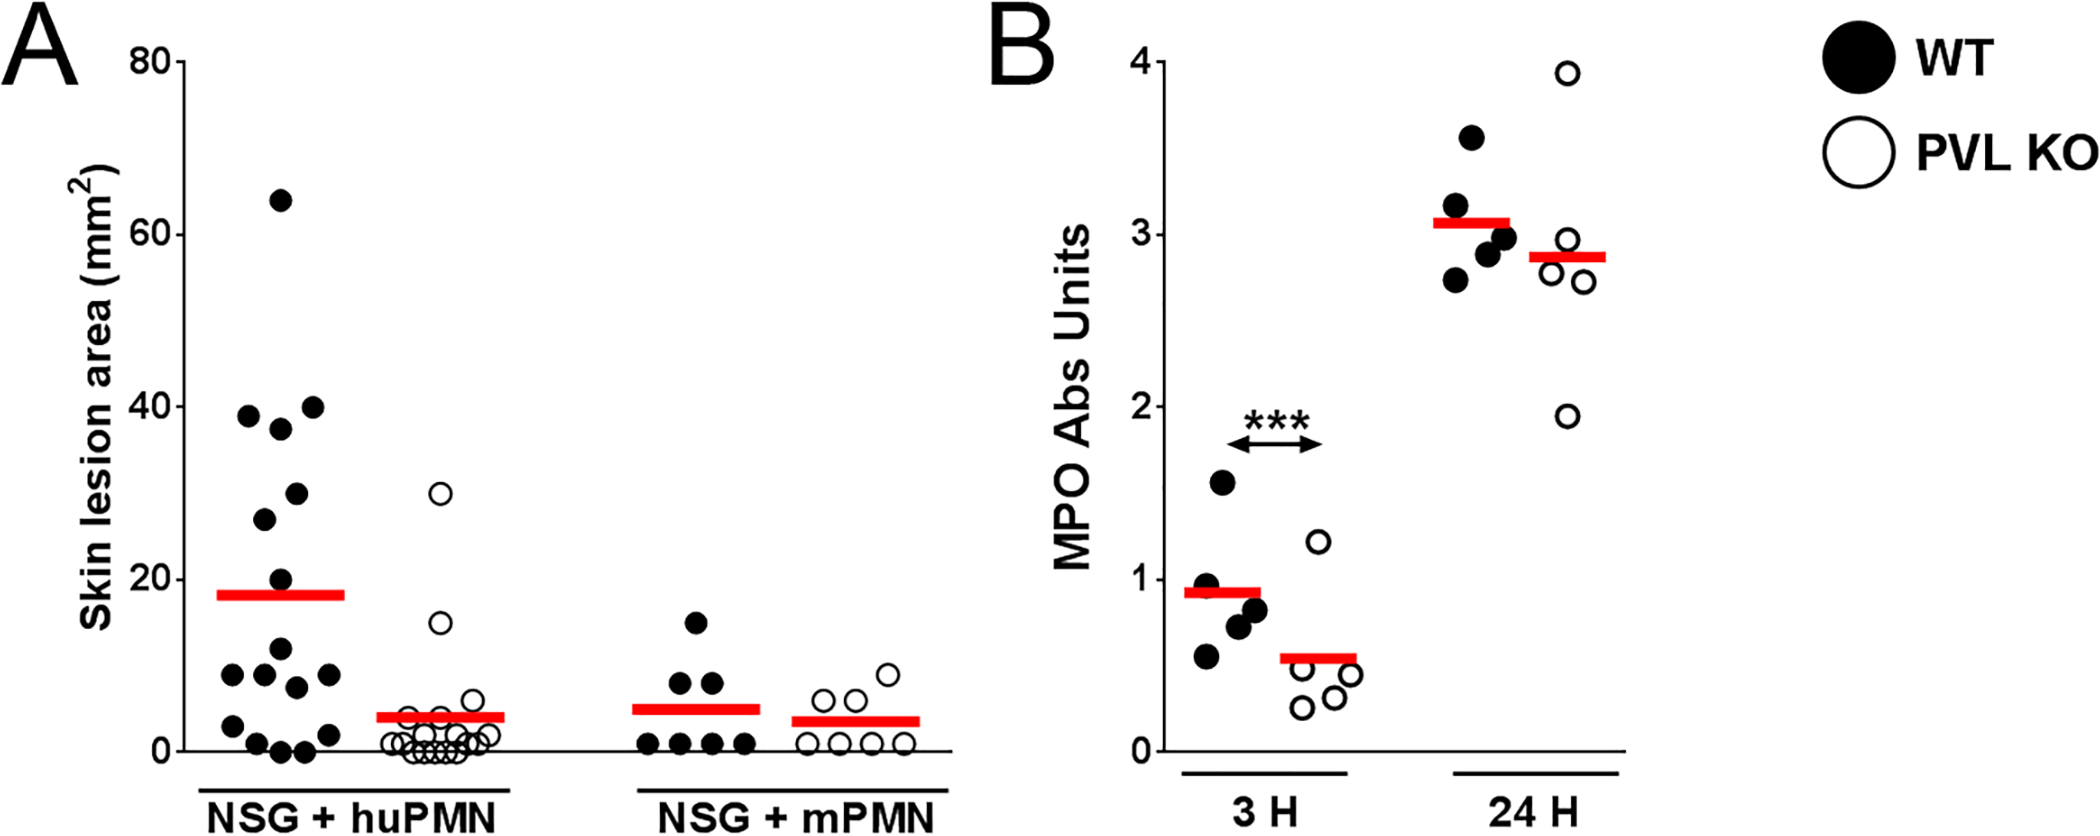 PVL contributes to dermonecrosis in NSG mice adoptively transferred with human PMN.